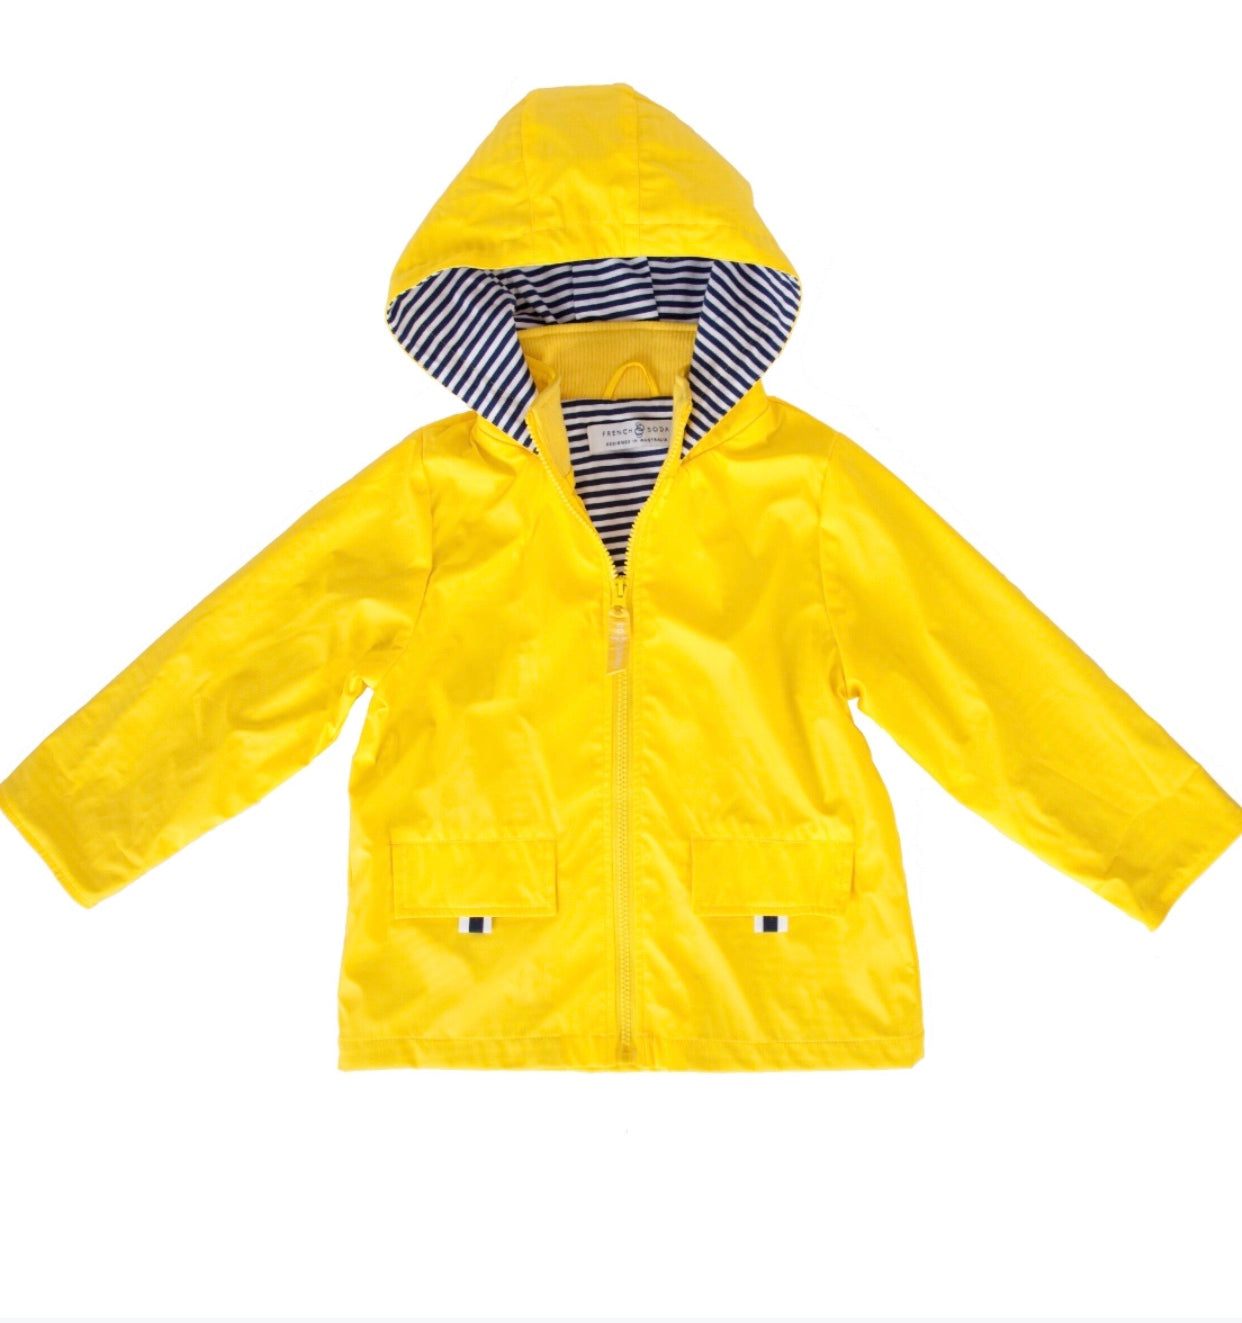 French Soda Yellow Zip Unisex Raincoat